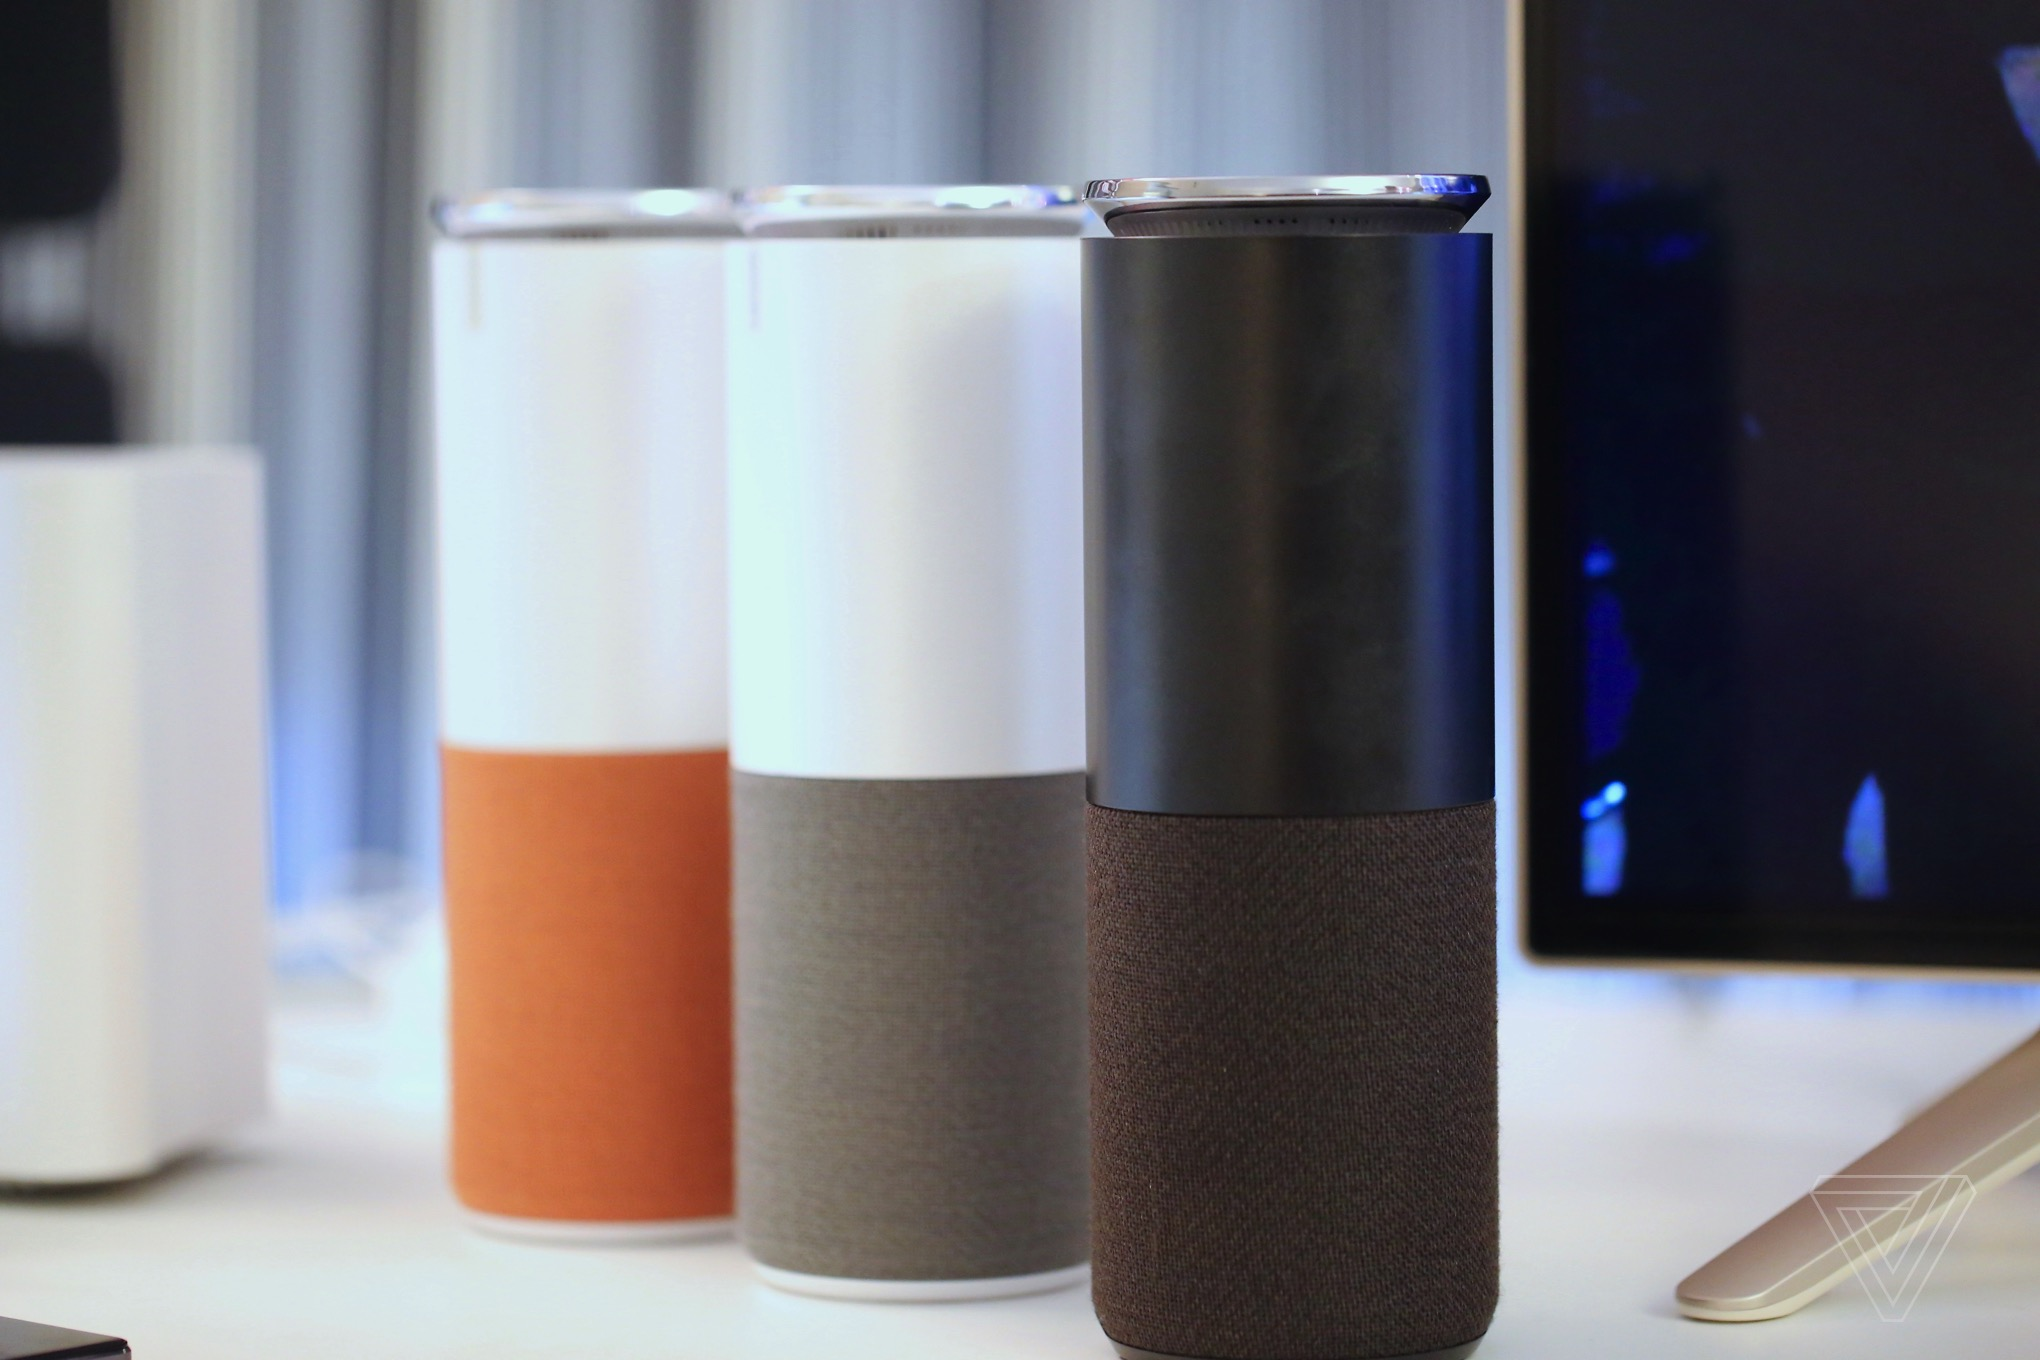 lenovo has made an amazon echo lookalike but with better speakers the verge. Black Bedroom Furniture Sets. Home Design Ideas